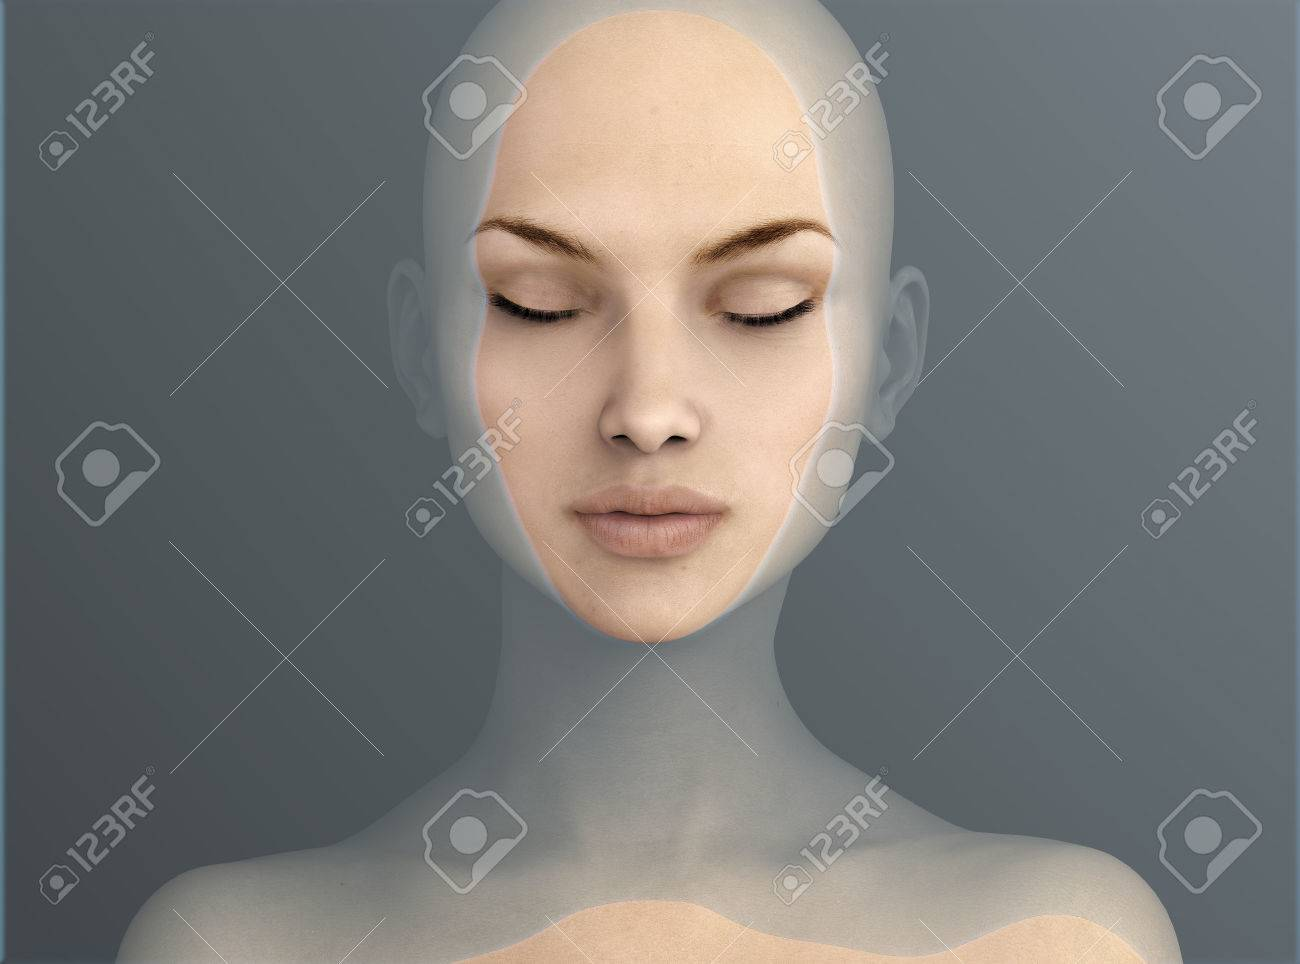 woman floating in water, 3d illustration - 58961854